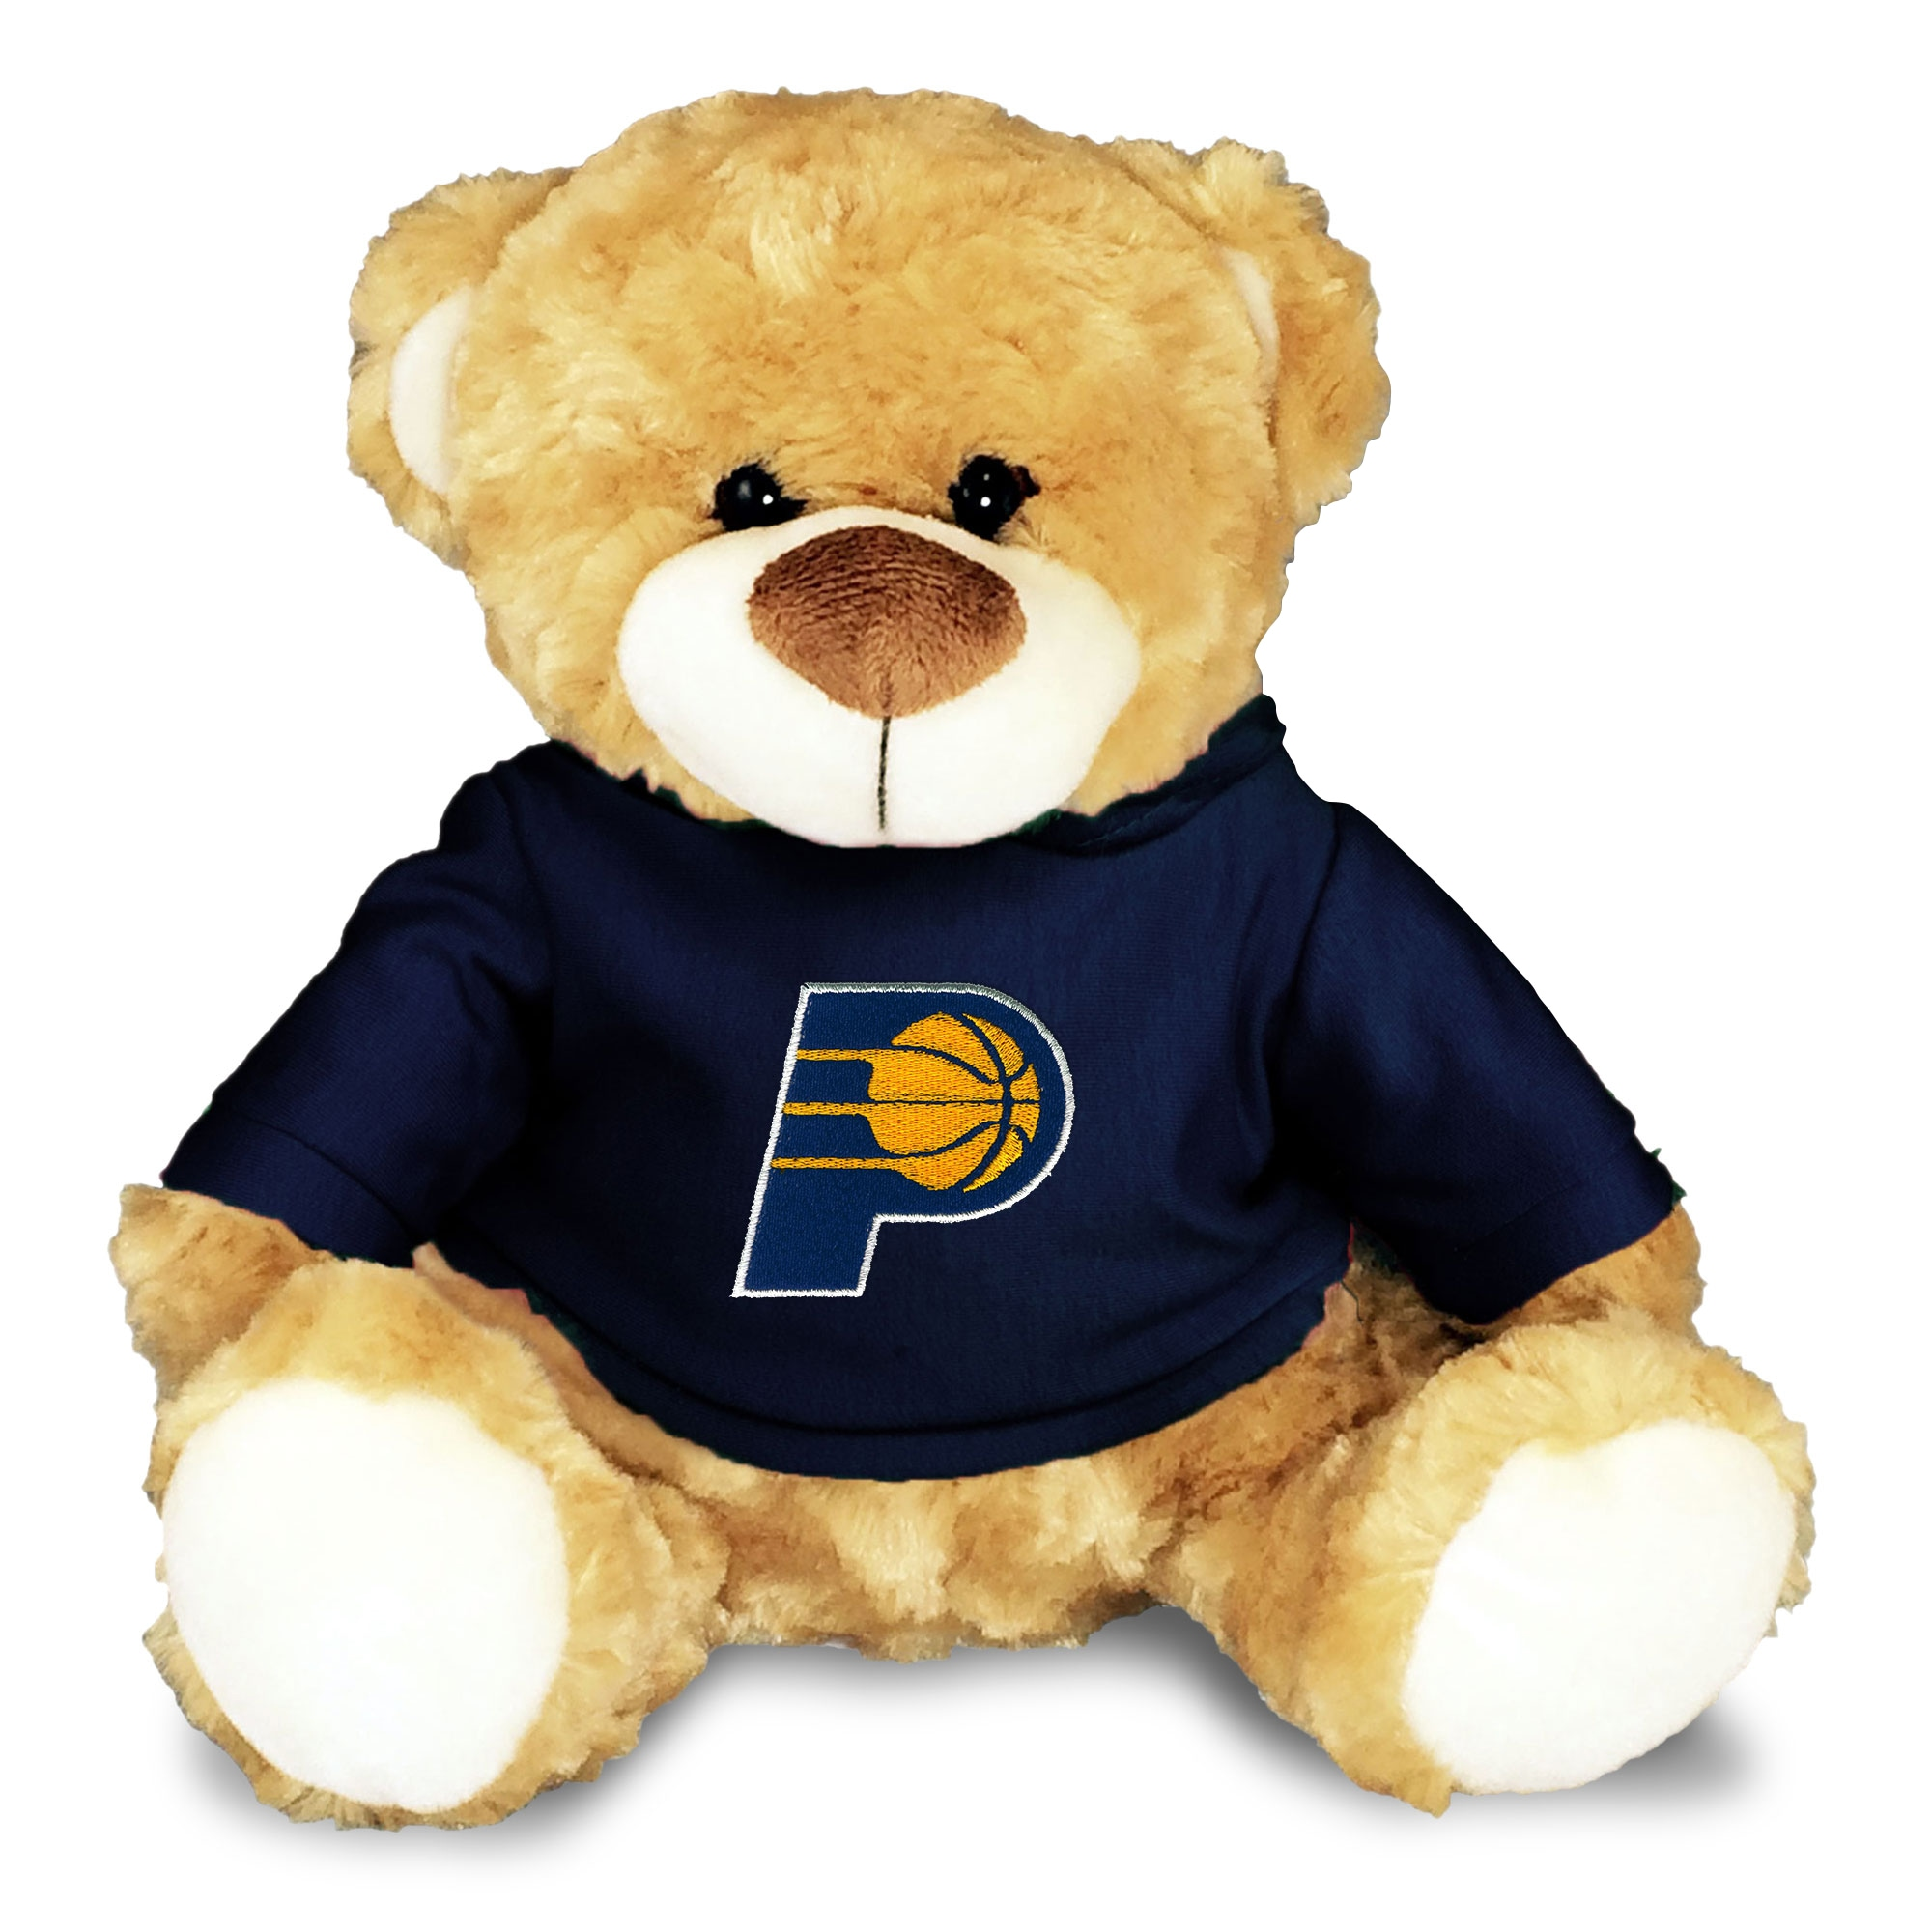 Indiana Pacers Personalized 10'' Plush Bear - Navy